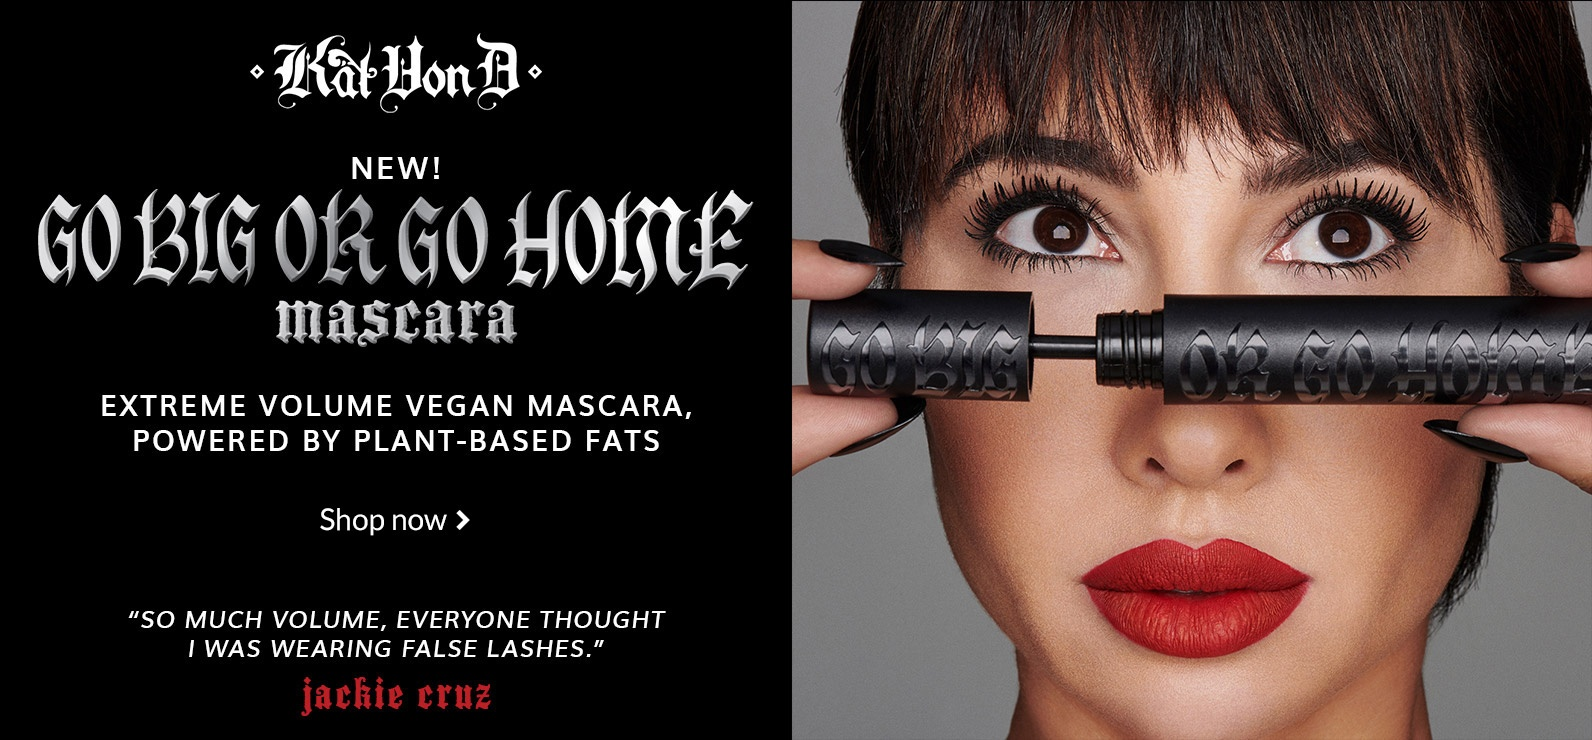 dc0b6266342 Learn more about Kat Von D make up